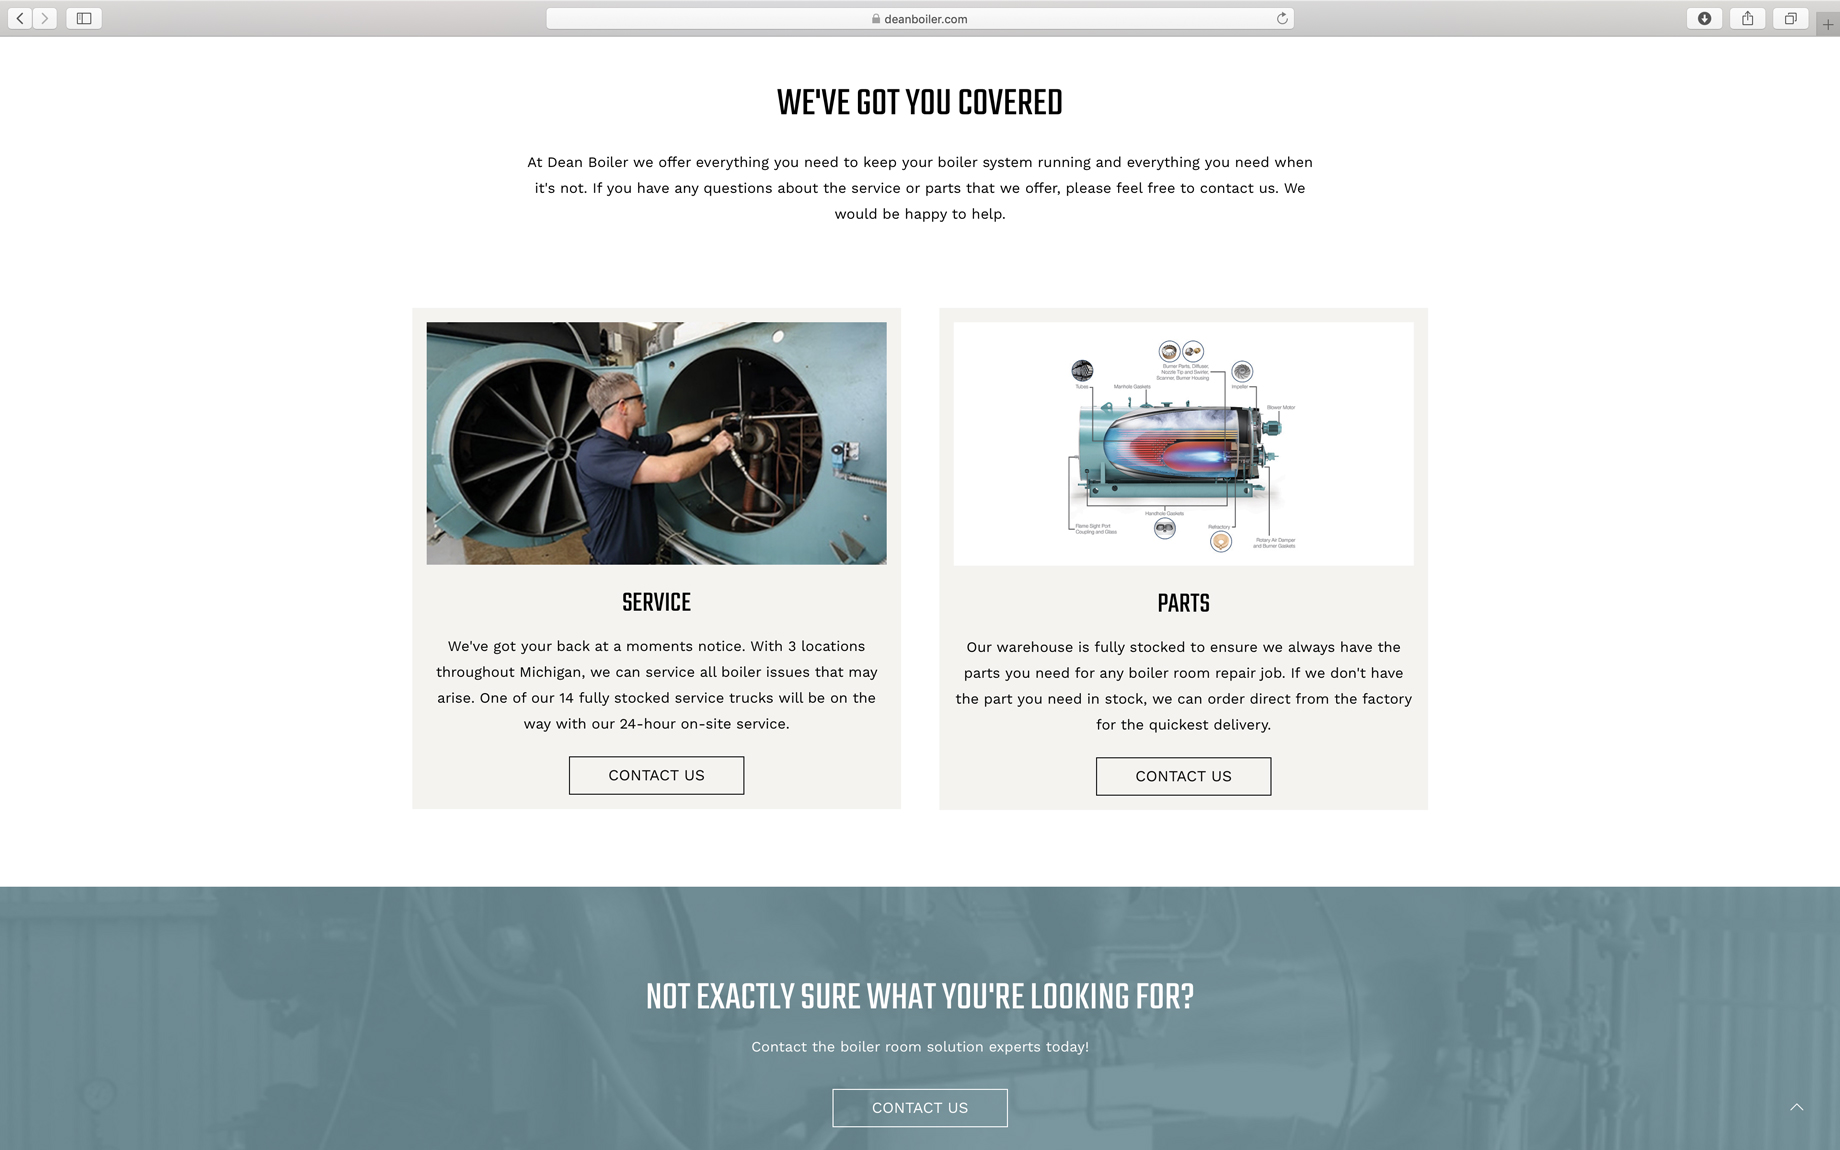 website page layout for dean boiler in Michigan